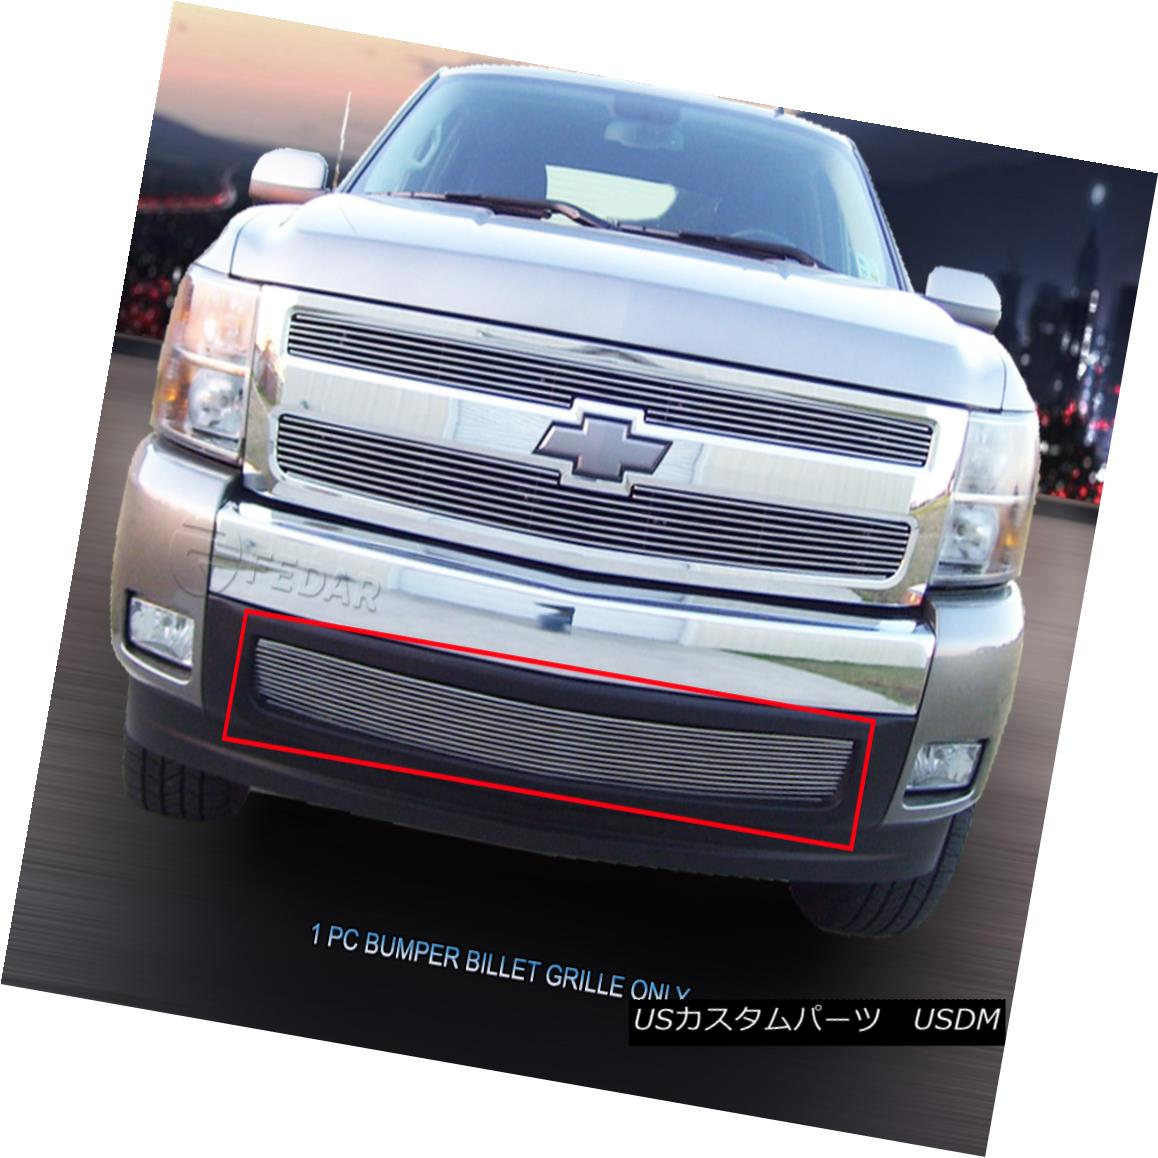 グリル Fedar Fits 07-13 Chevy Silverado 1500 Long Polished Billet Grille Overlay Fedar Fitch 07-13 Chevy Silverado 1500ロングポリッシュビレットグリルオーバーレイ